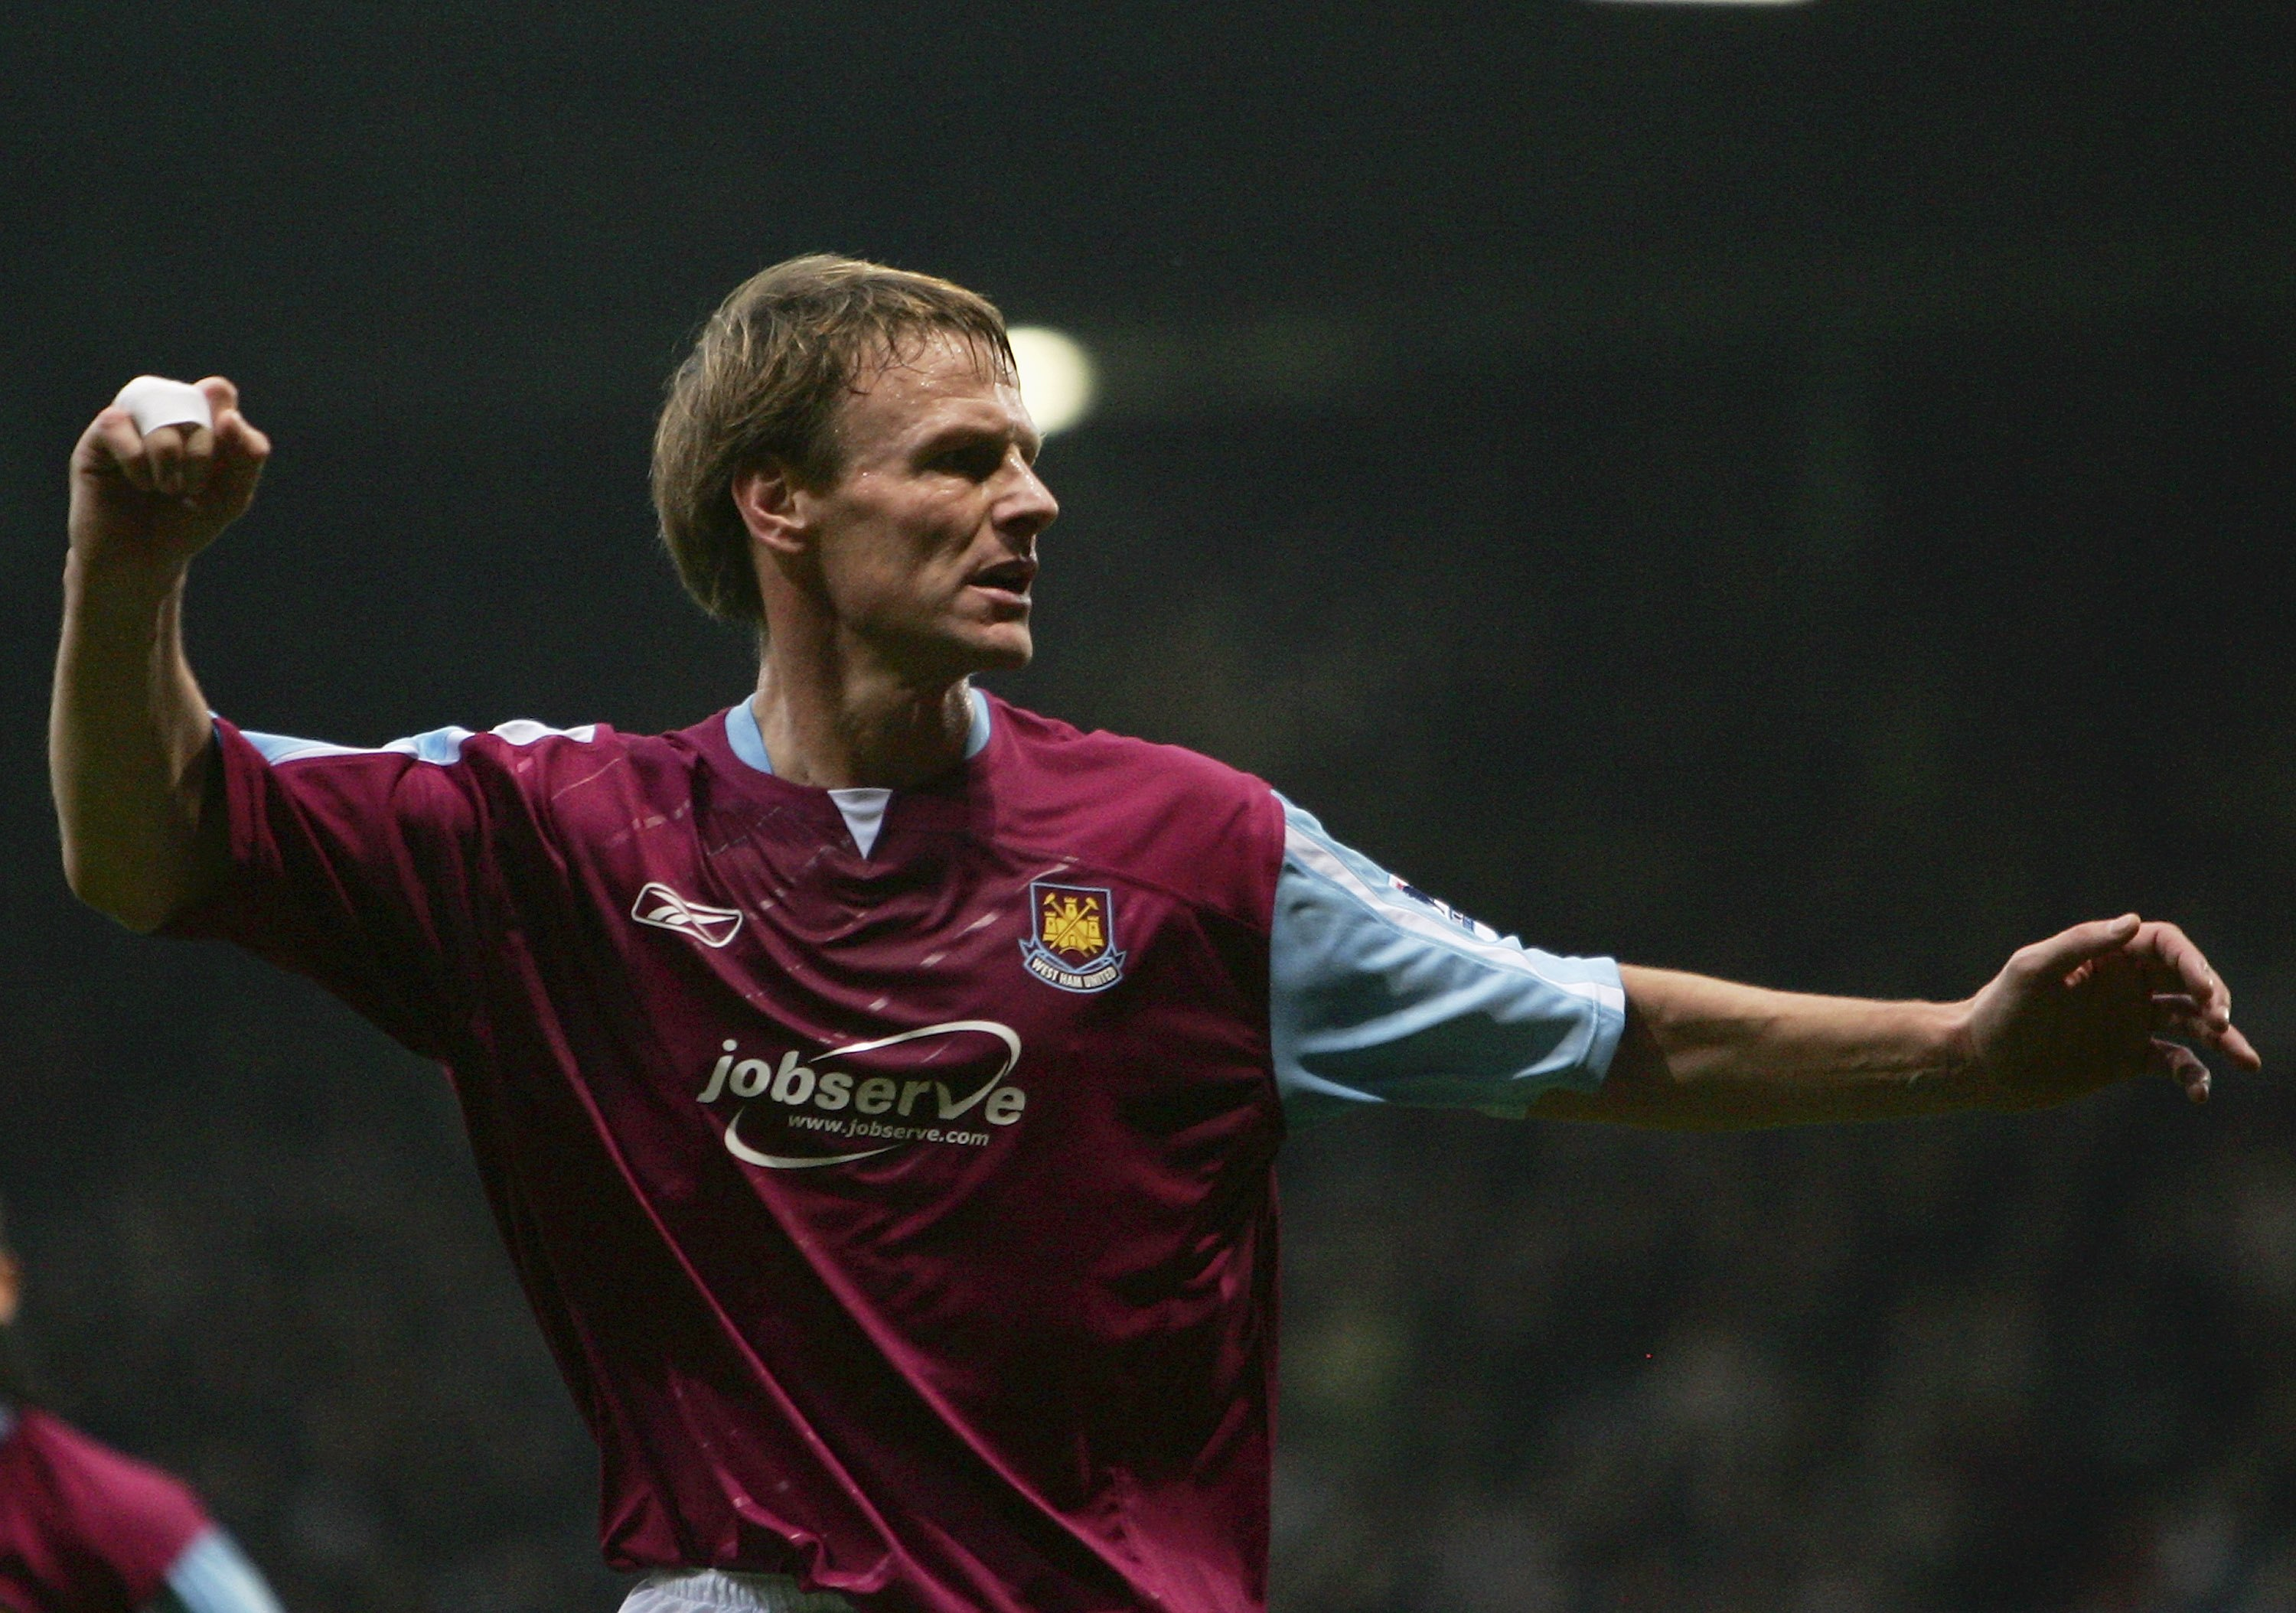 Teddy Sheringham playing for West Ham